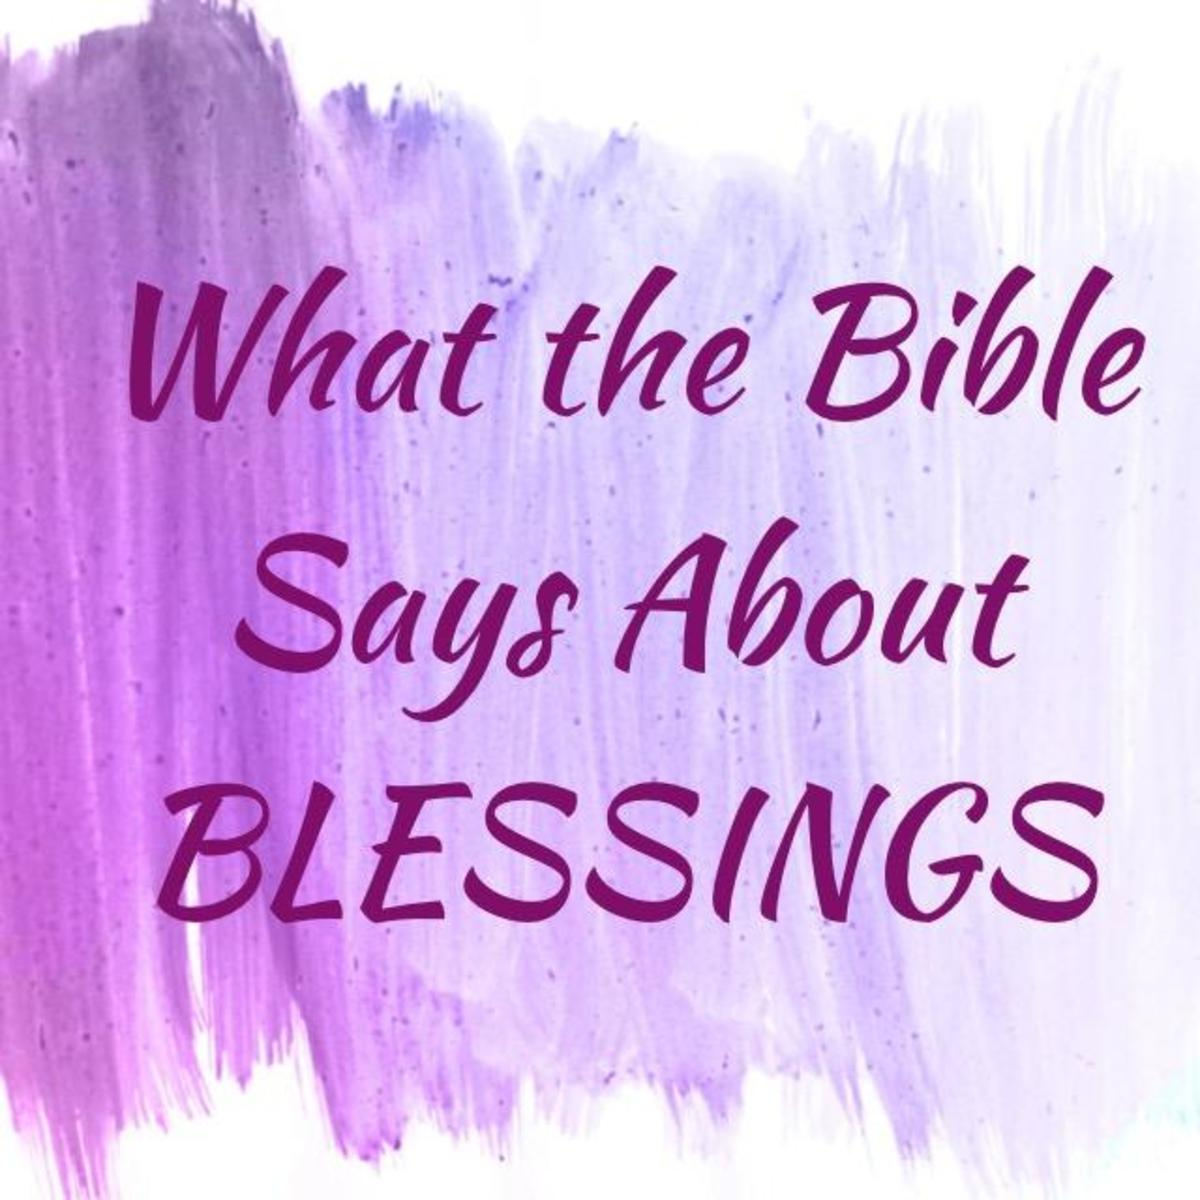 what-the-bible-says-about-blessings